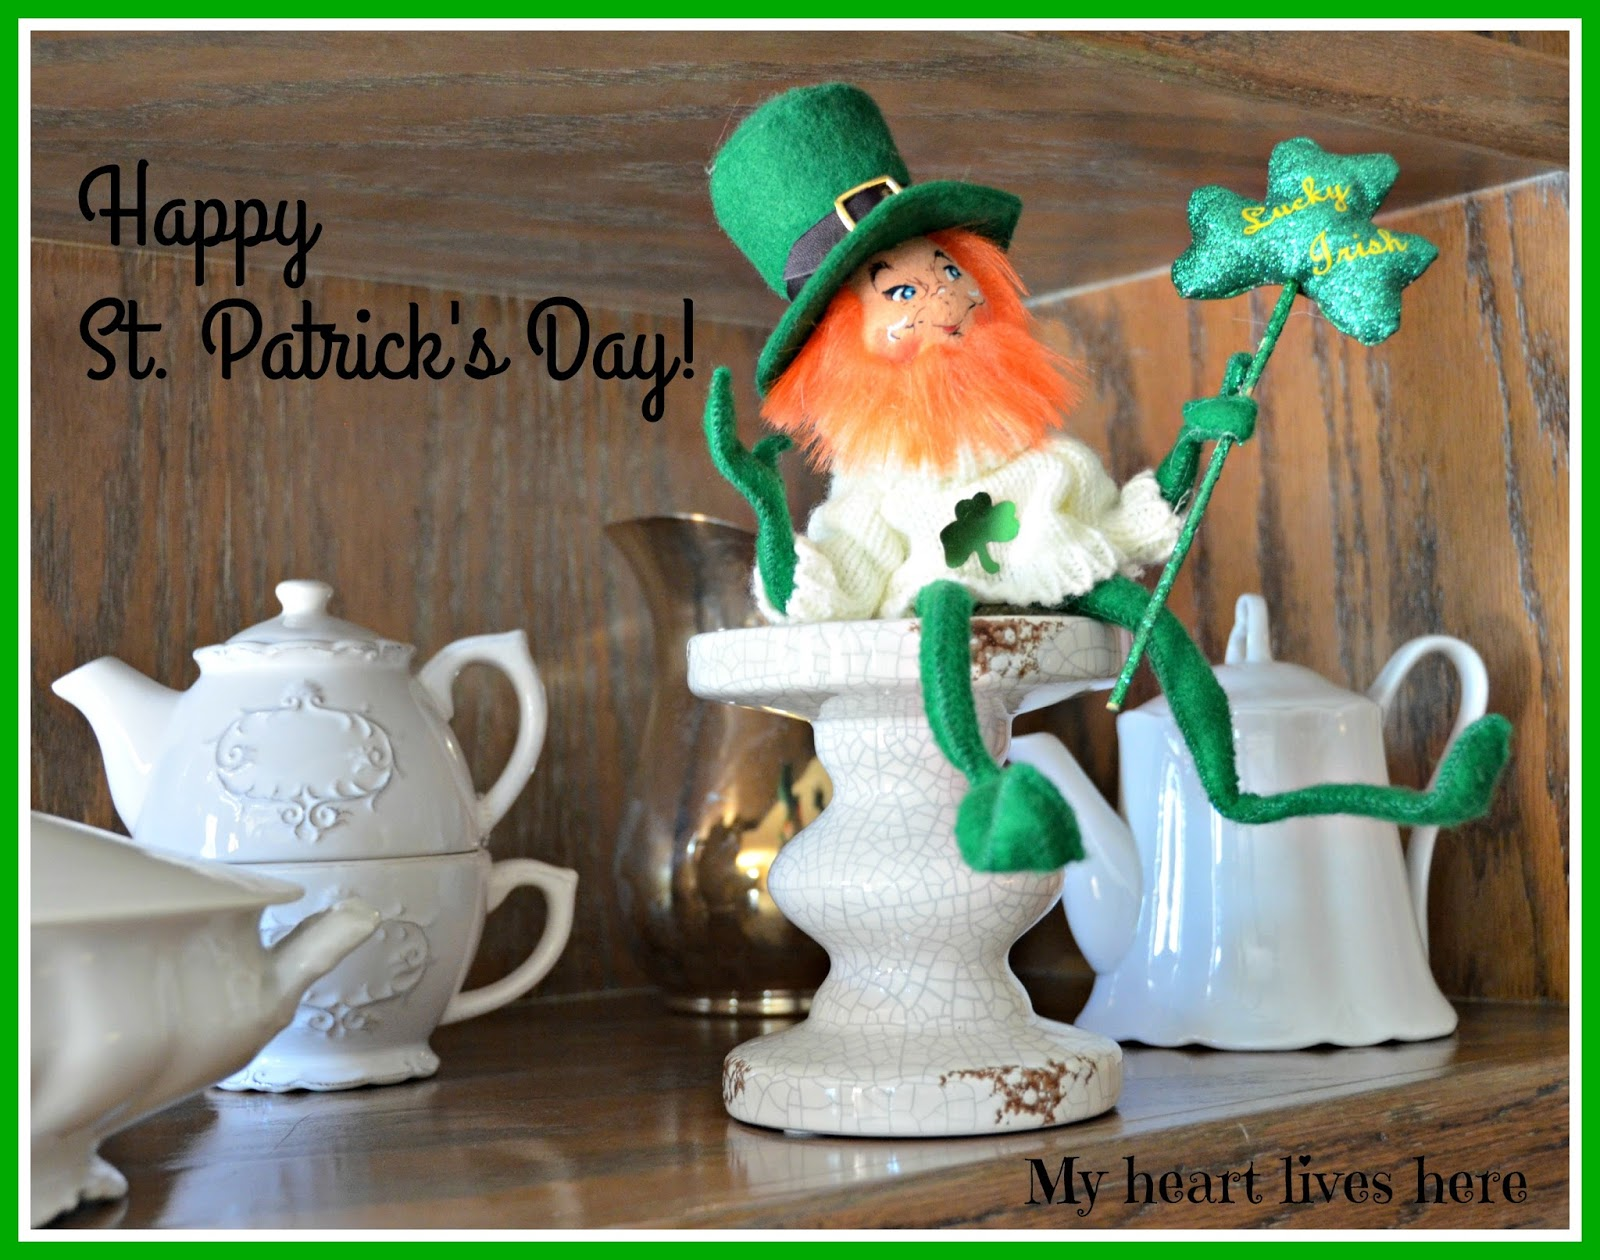 Happy St. Patrick's Day! - My Heart Lives Here